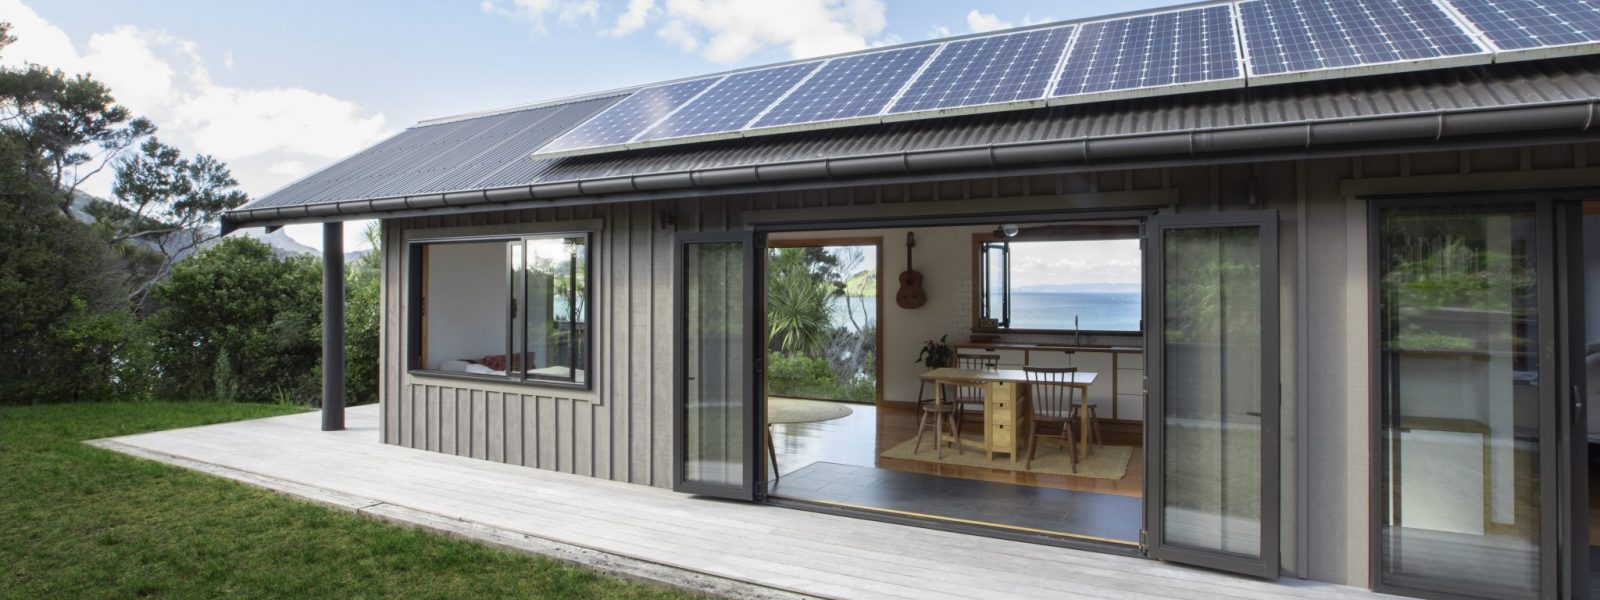 Off Grid Eco Living - Header Image